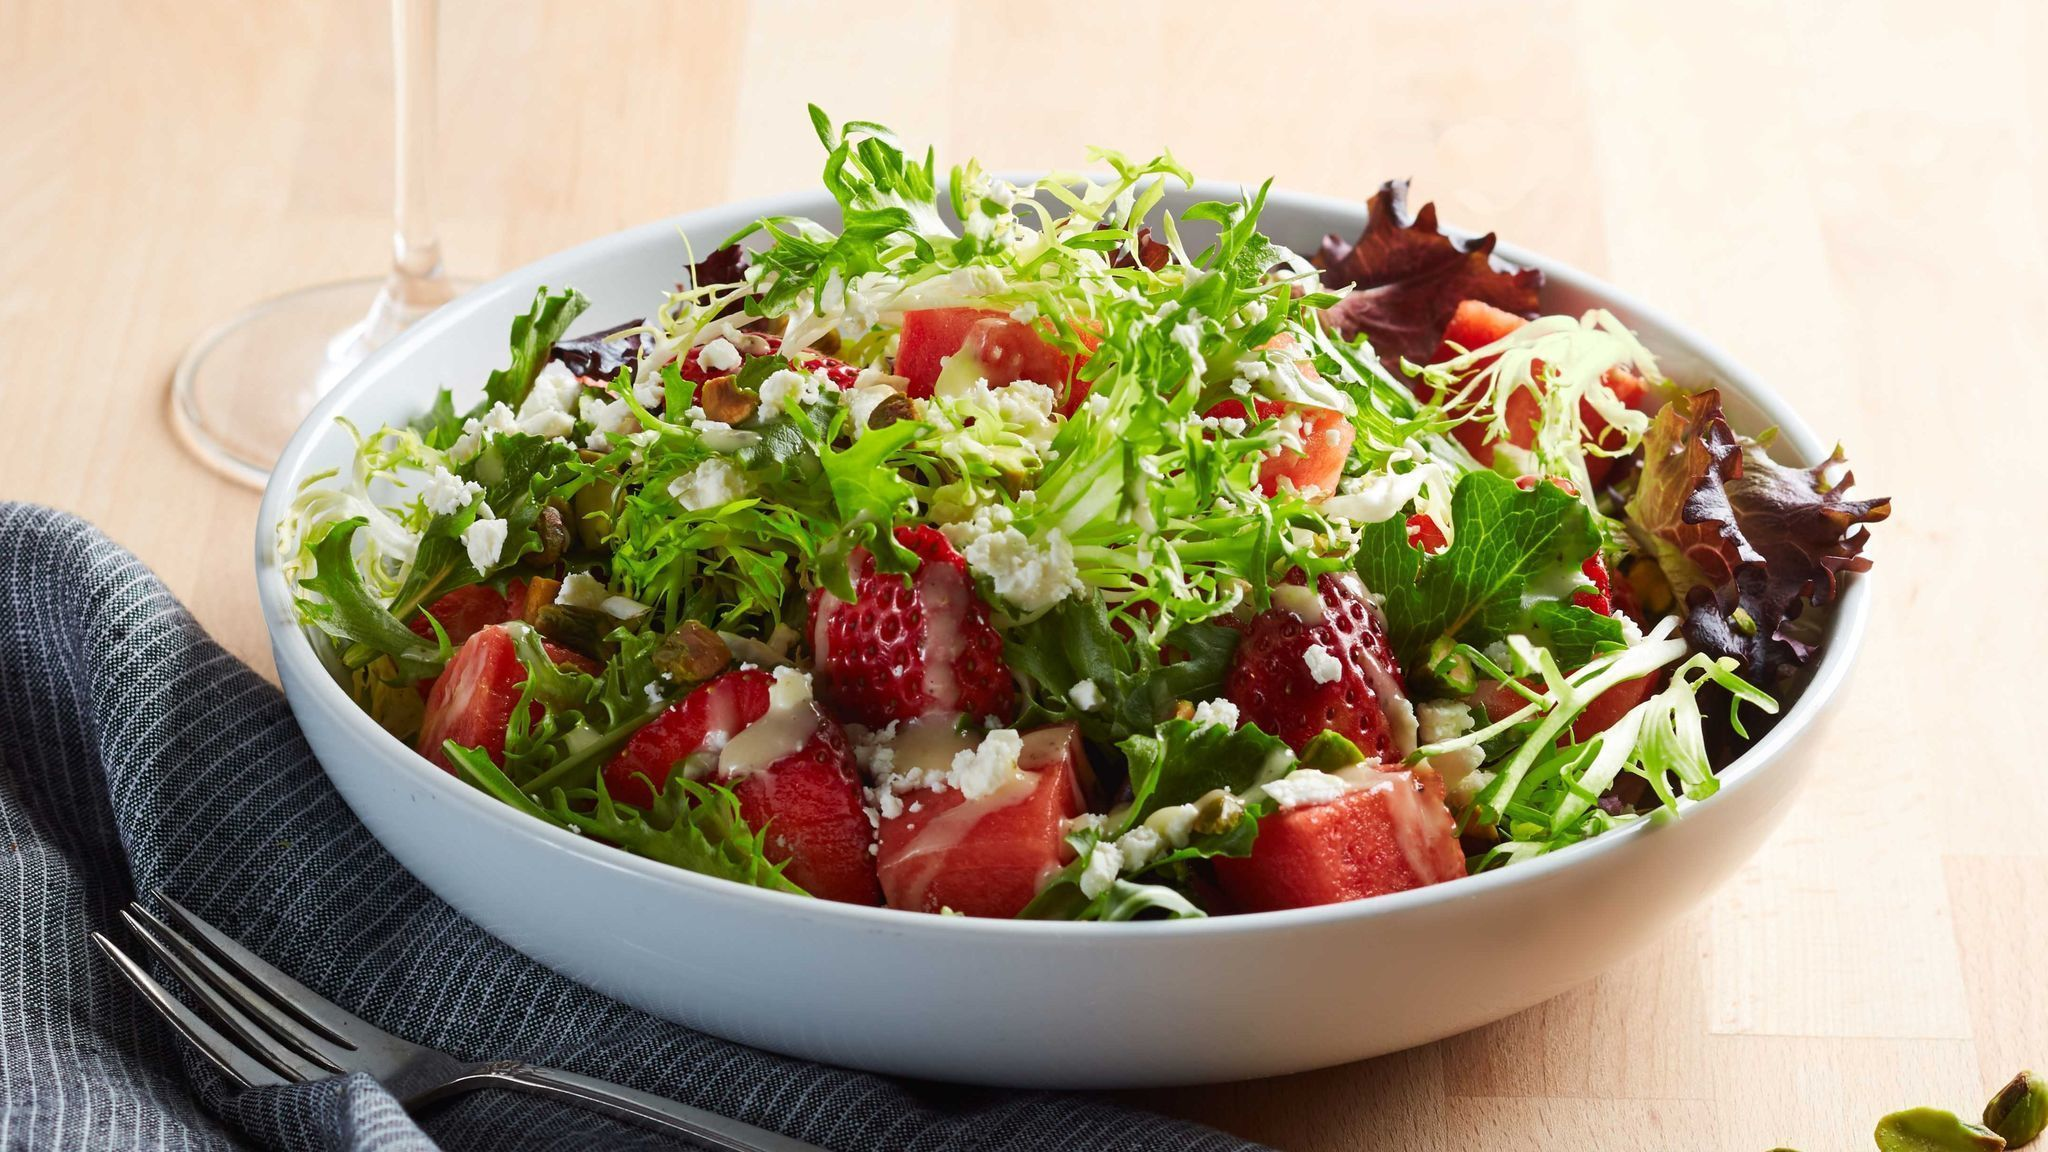 california pizza kitchen shares summer salad the san go union